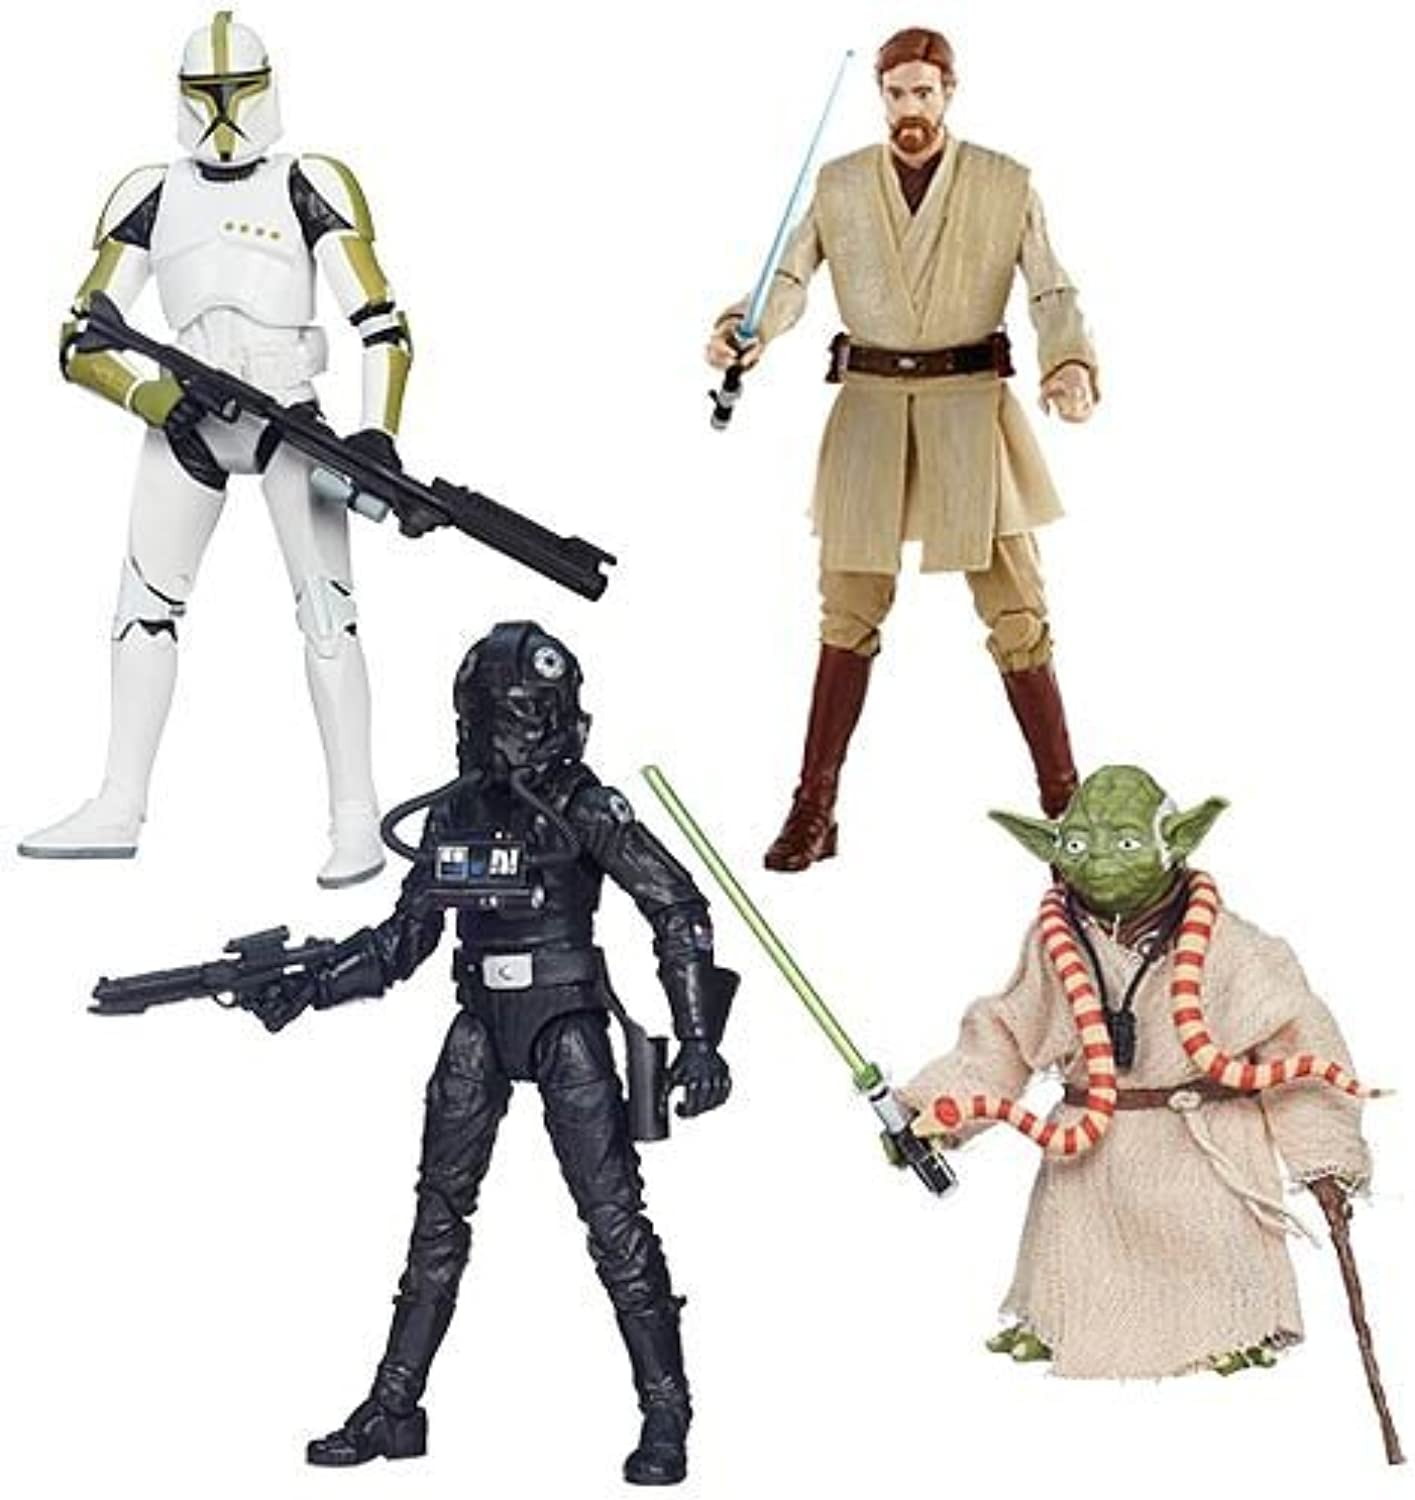 Star Wars Black Series 6inch Action Figures Wave 6 Set of 4 by Star Wars